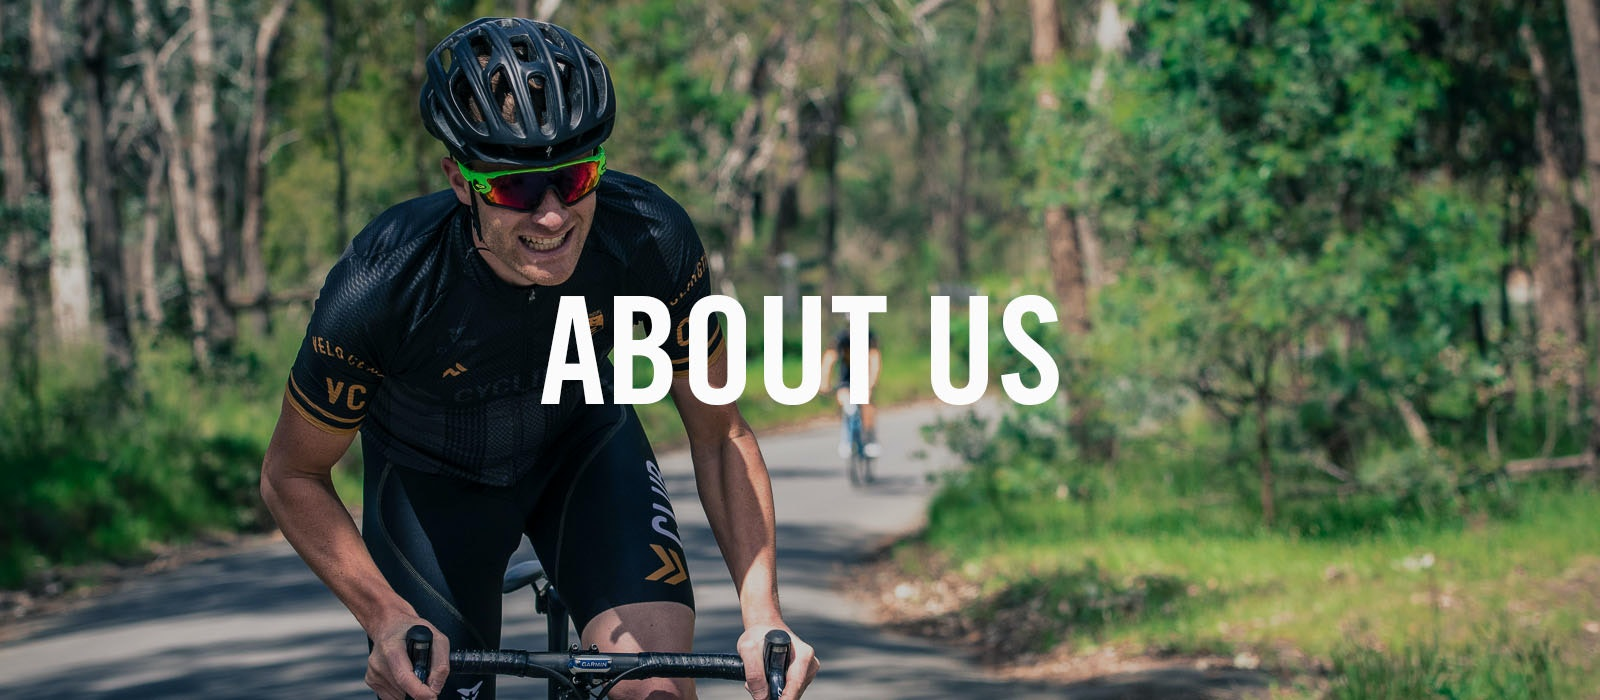 The CyclingTips Emporium